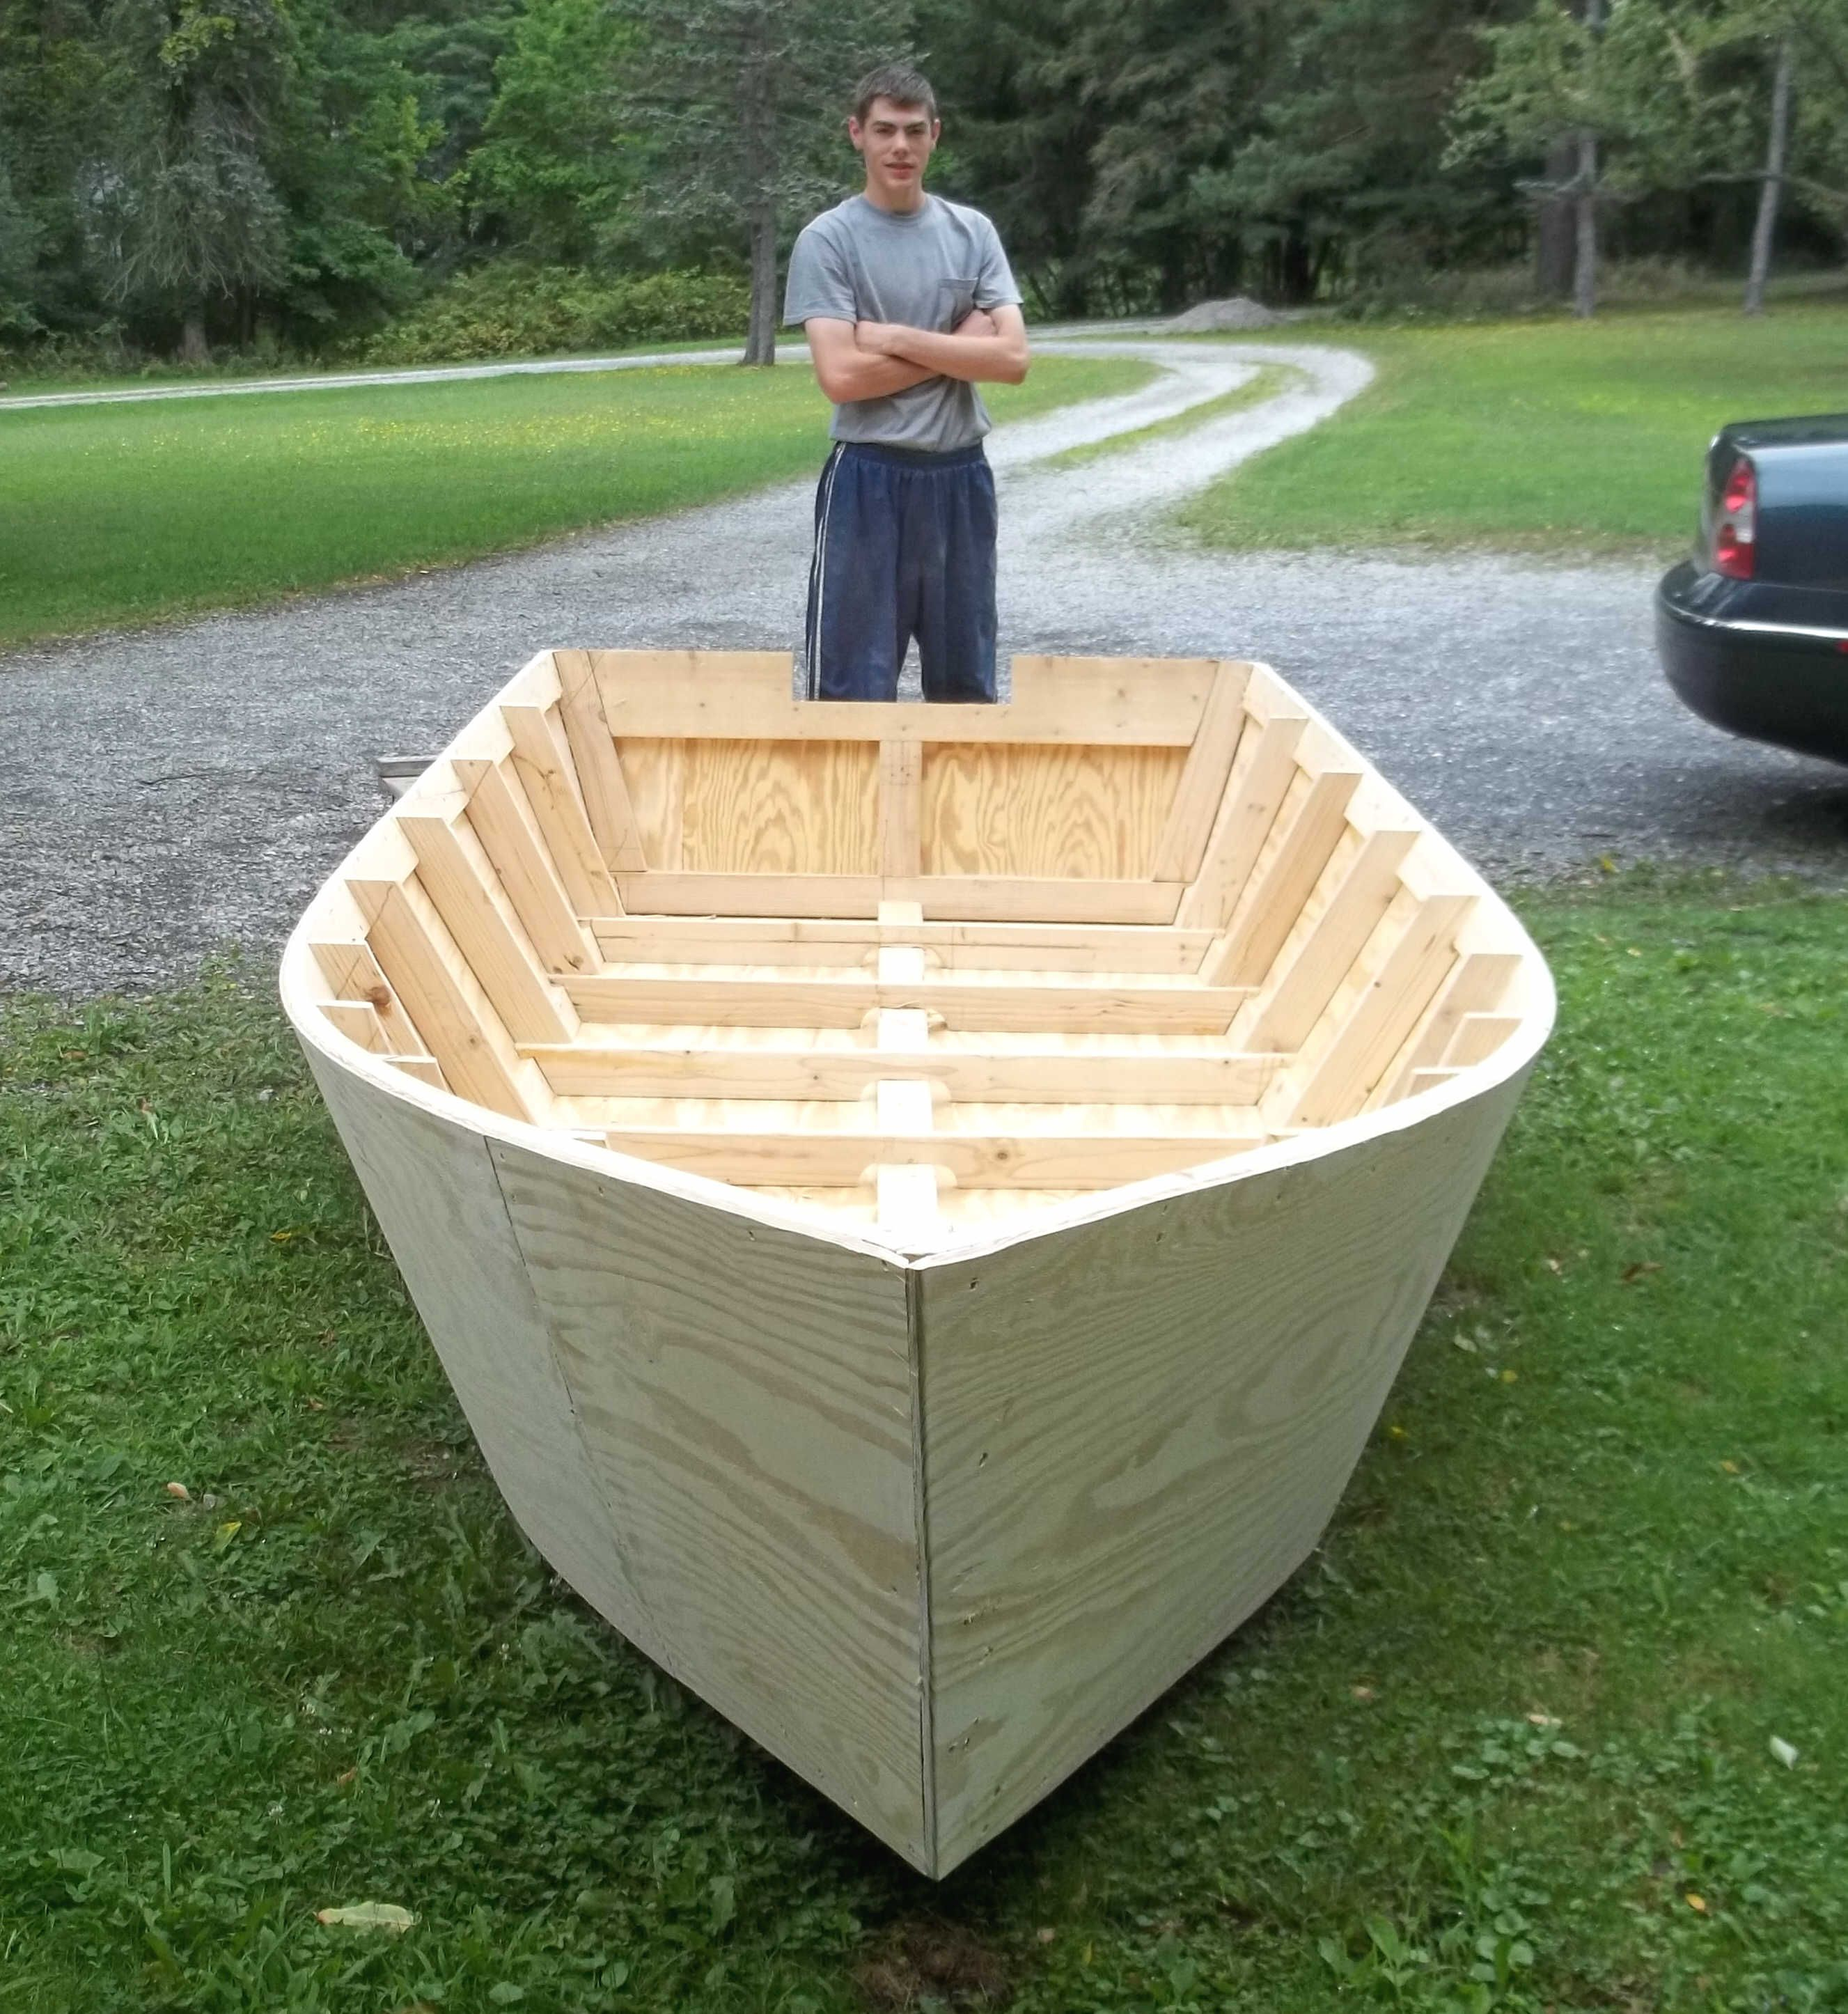 Wooden Skiff Plans Pictures to Pin on Pinterest - PinsDaddy